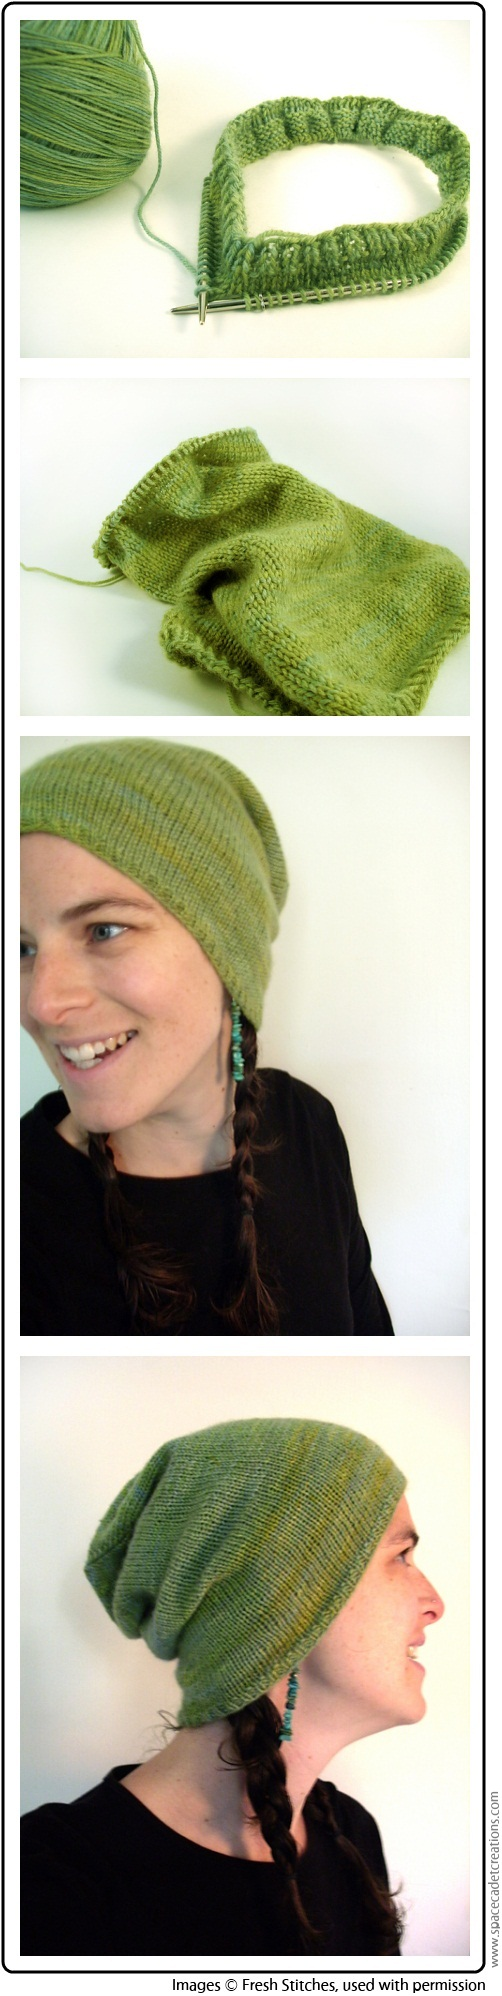 Stacey Trock of Fresh Stitches shows off her fabulous Rocka Beanie knitted in SpaceCadet Creations Estelle yarn in City Park